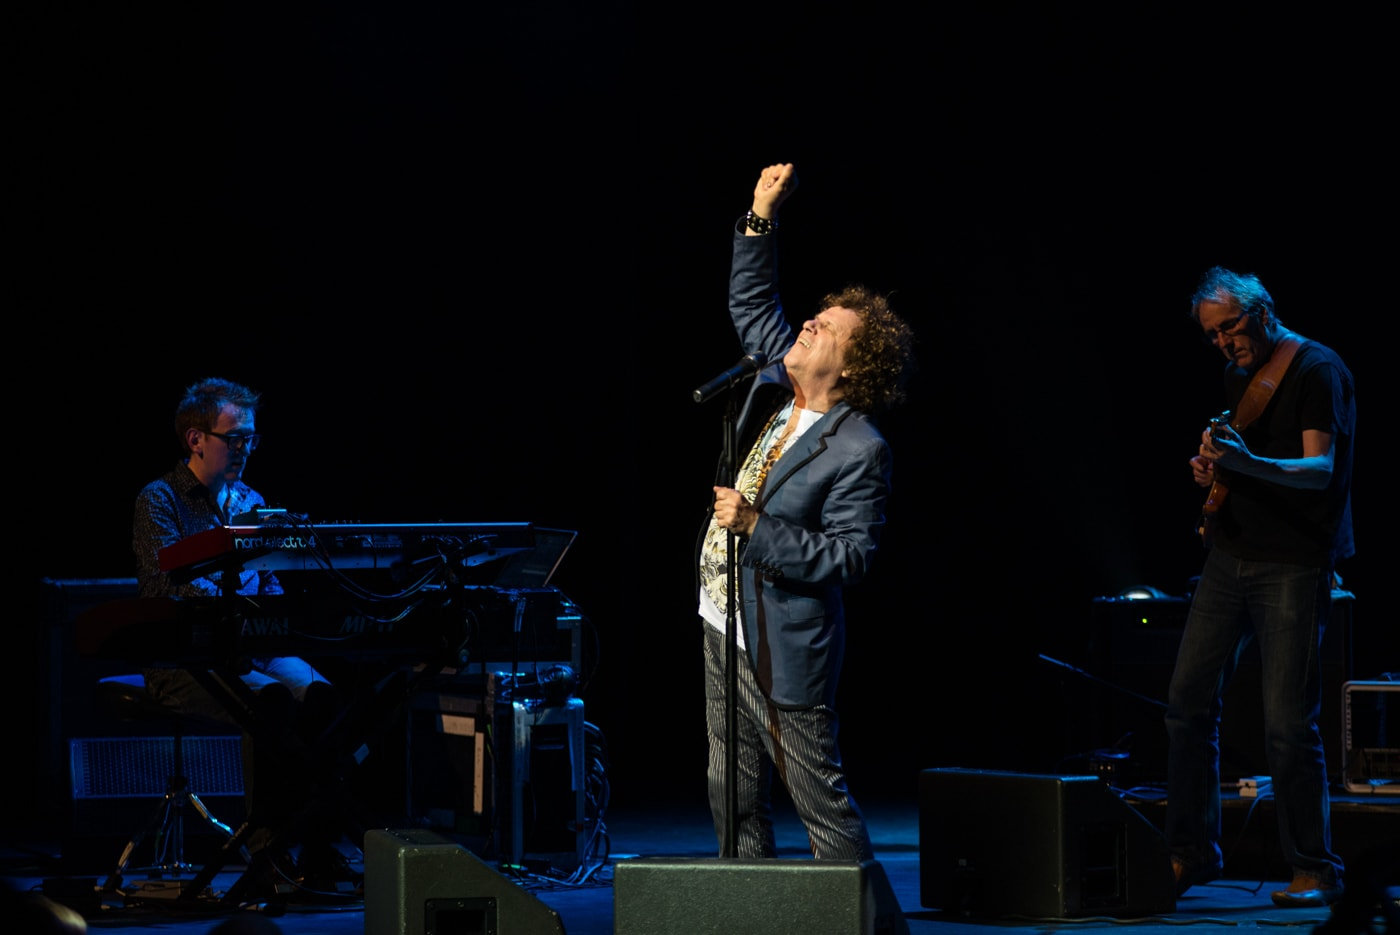 Leo Sayer at Bord Gais Energy Theatre by Sean Smyth (16-10-15) (30 of 129)